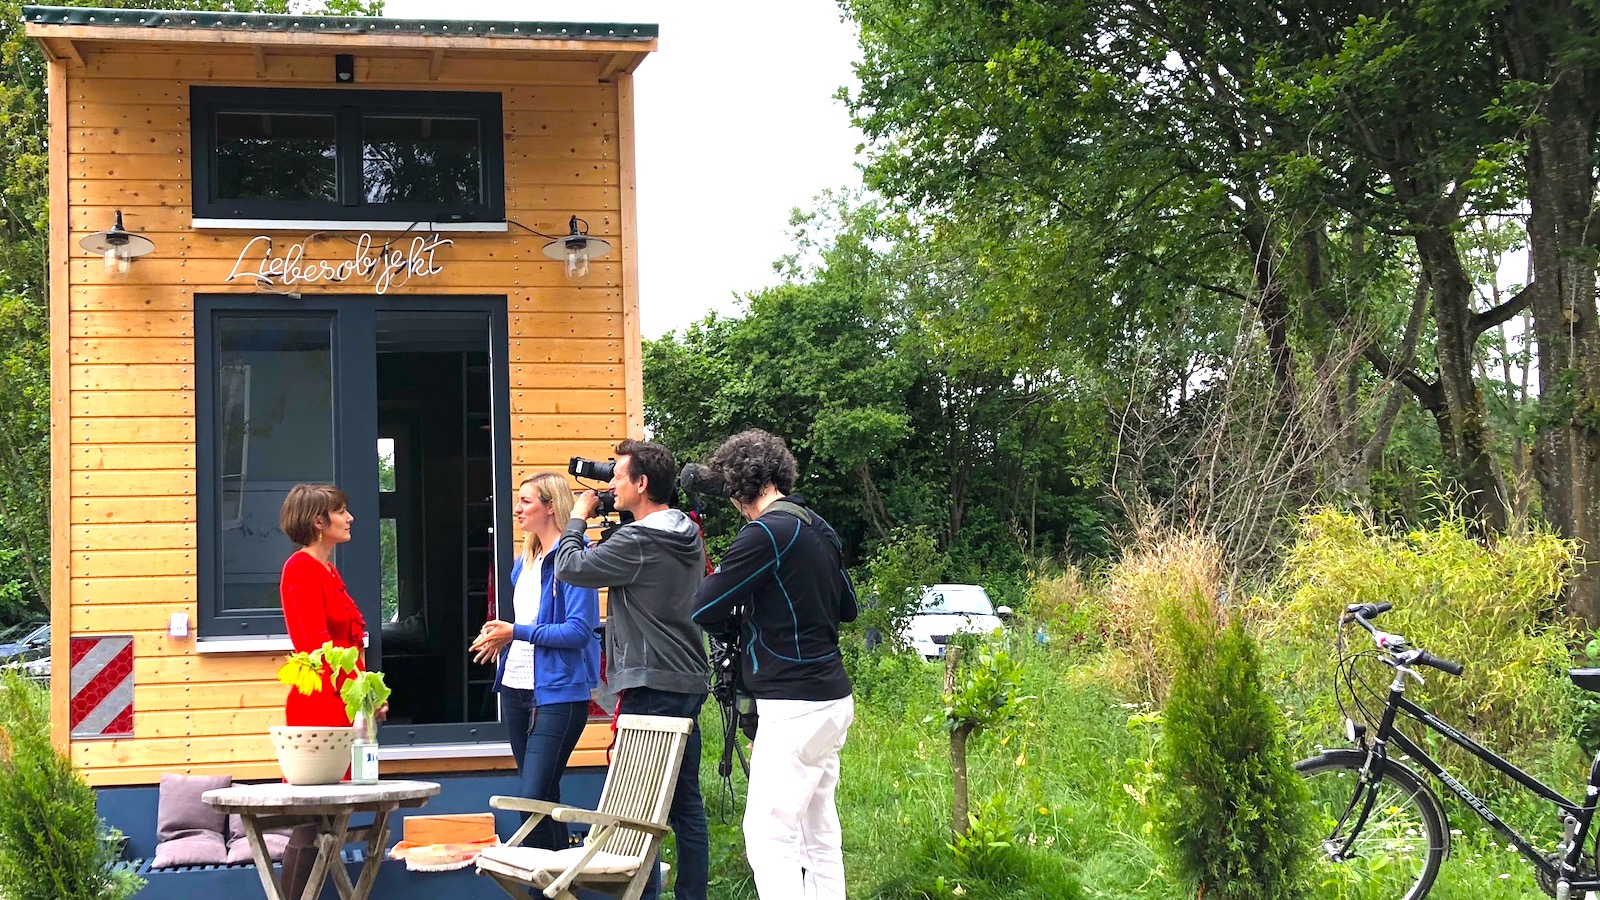 Das Tiny House in Utting am Ammersee